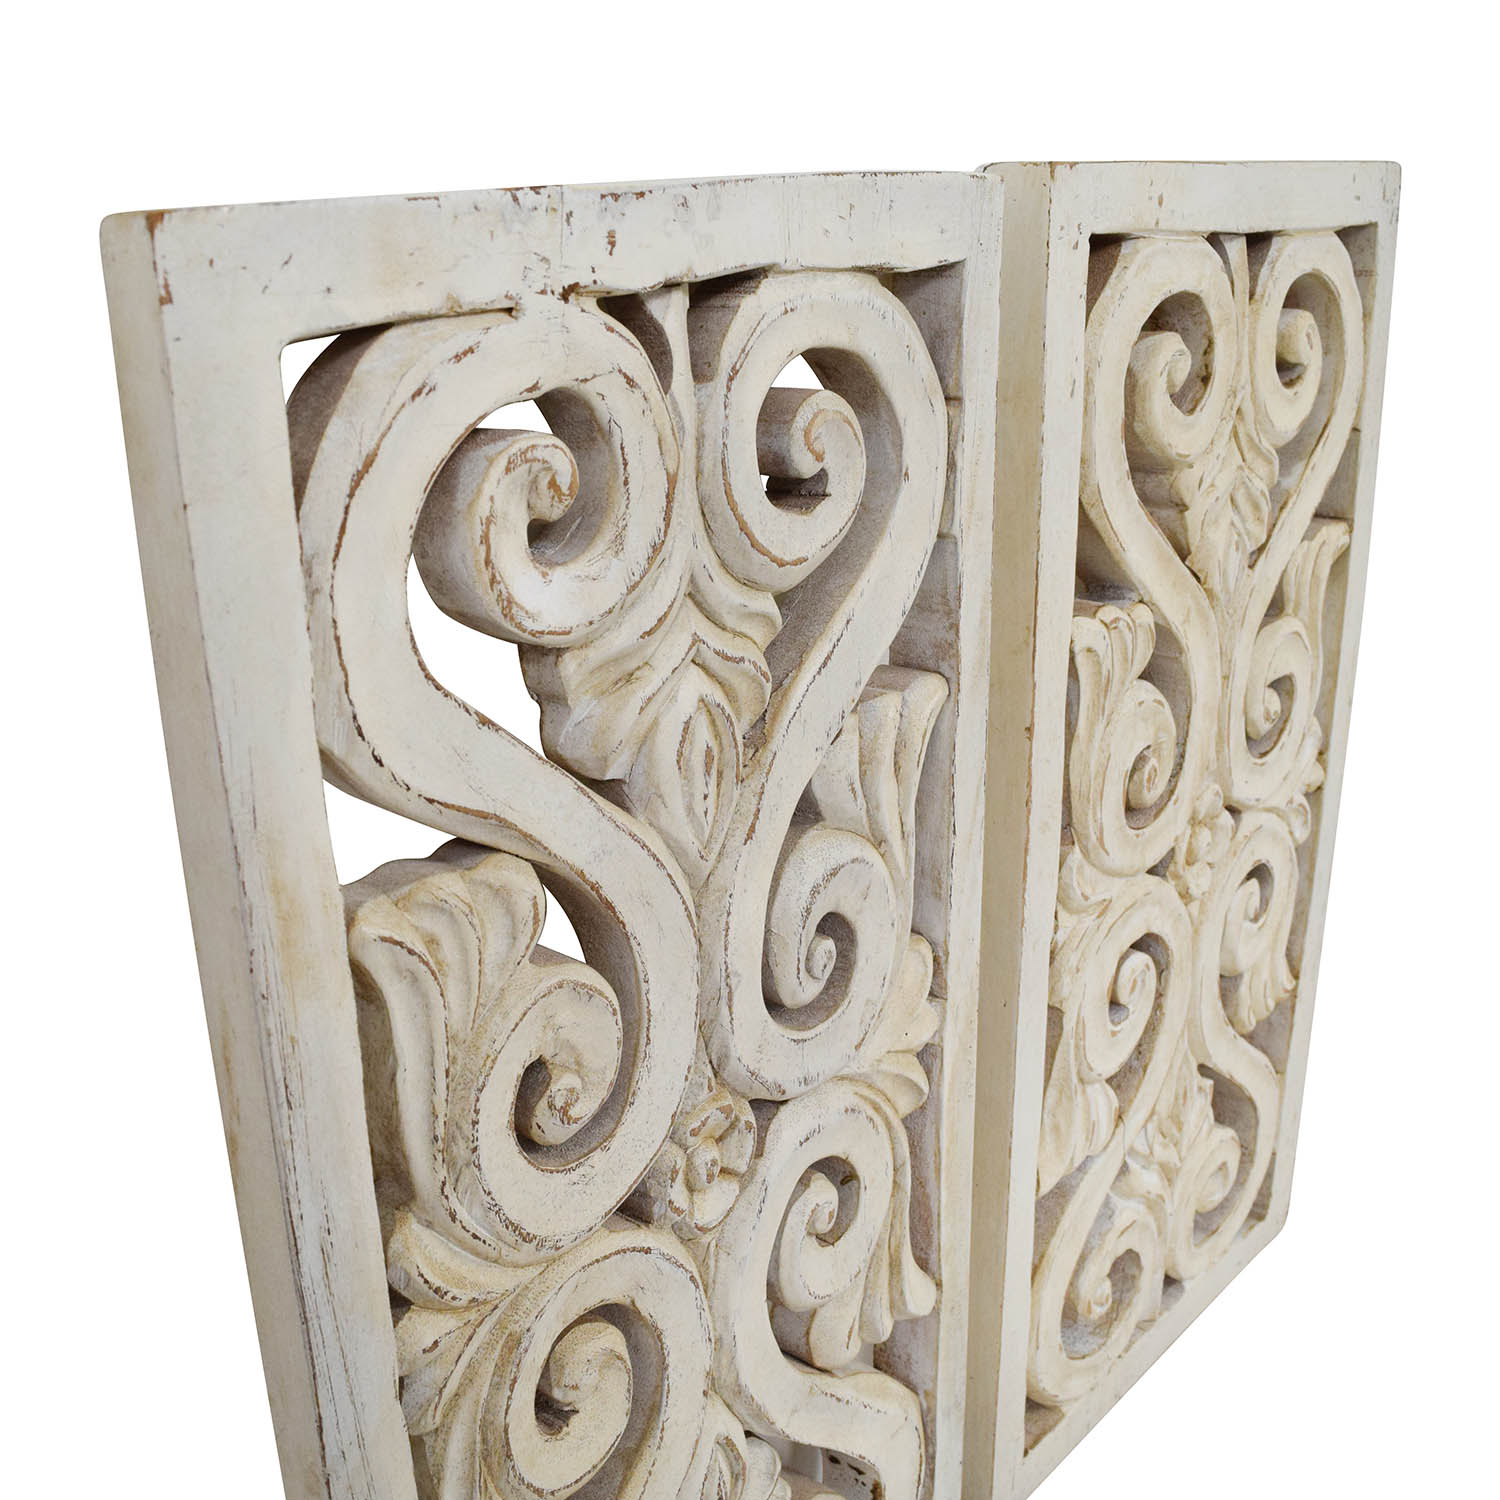 Distressed White Wood Wall Sculpture